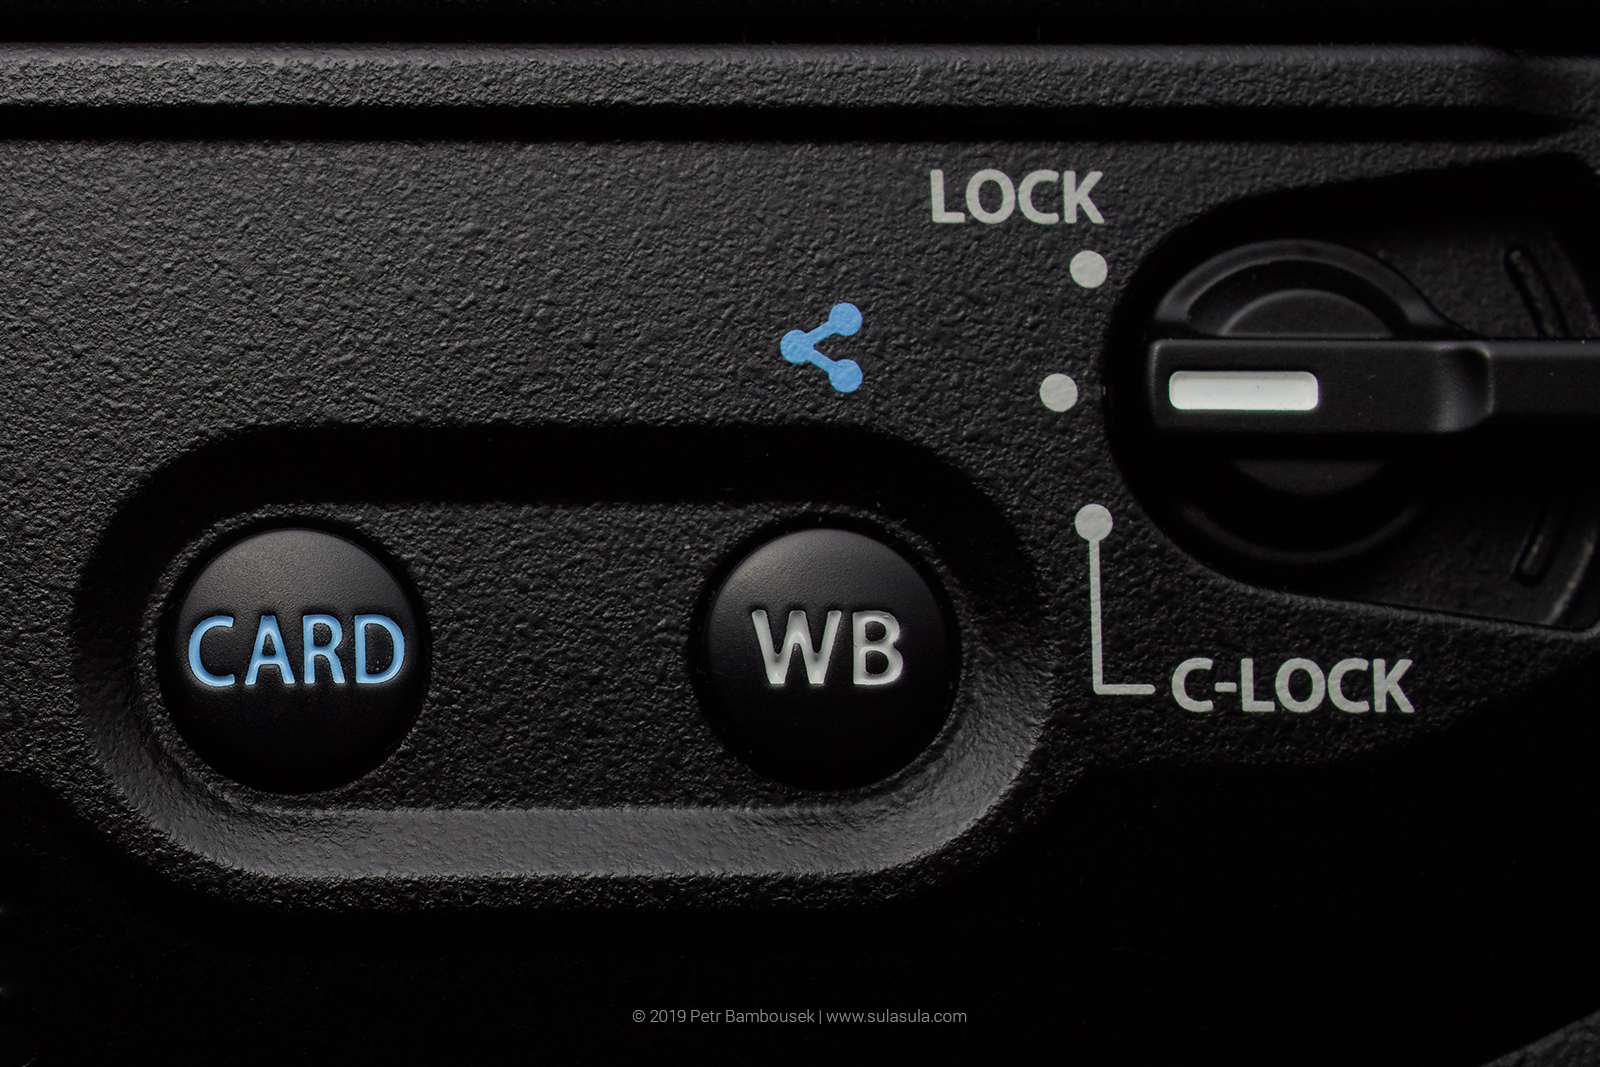 Card selection button (left). White balance button (right) - re-assigned to C4 (Pro capture) on my camera.